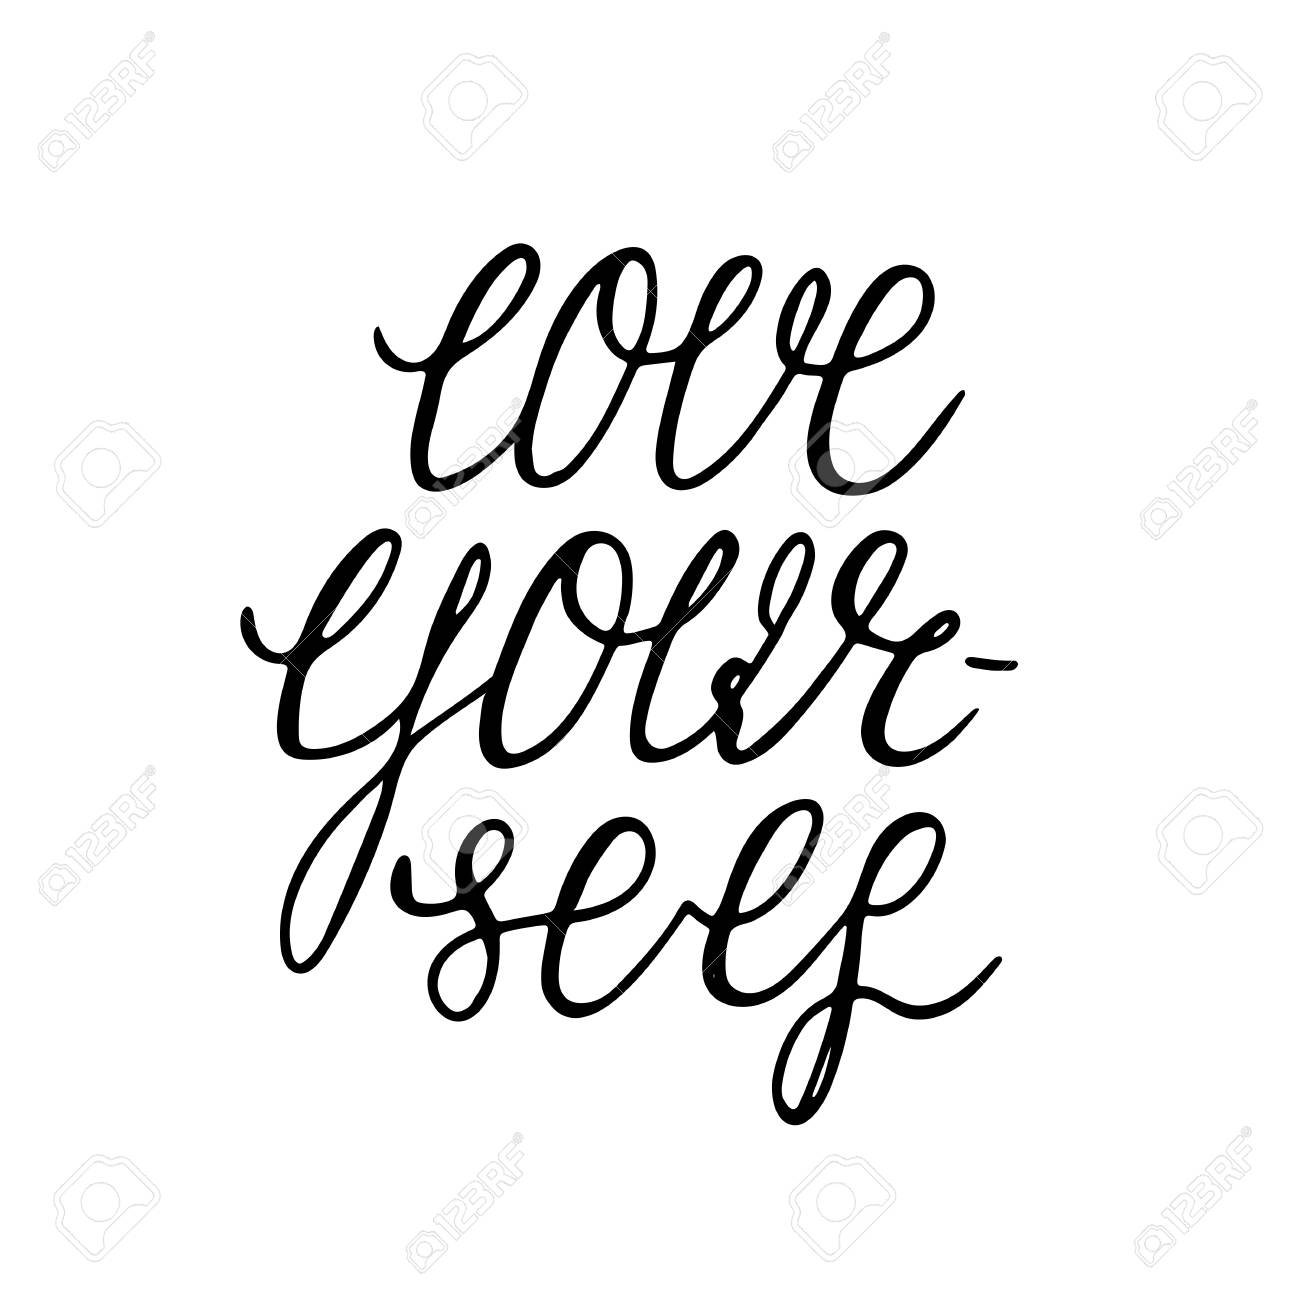 Love Yourself   Hand Sketched Ink Pen Lettering. Inspirational Motivational  Quote For The Card,